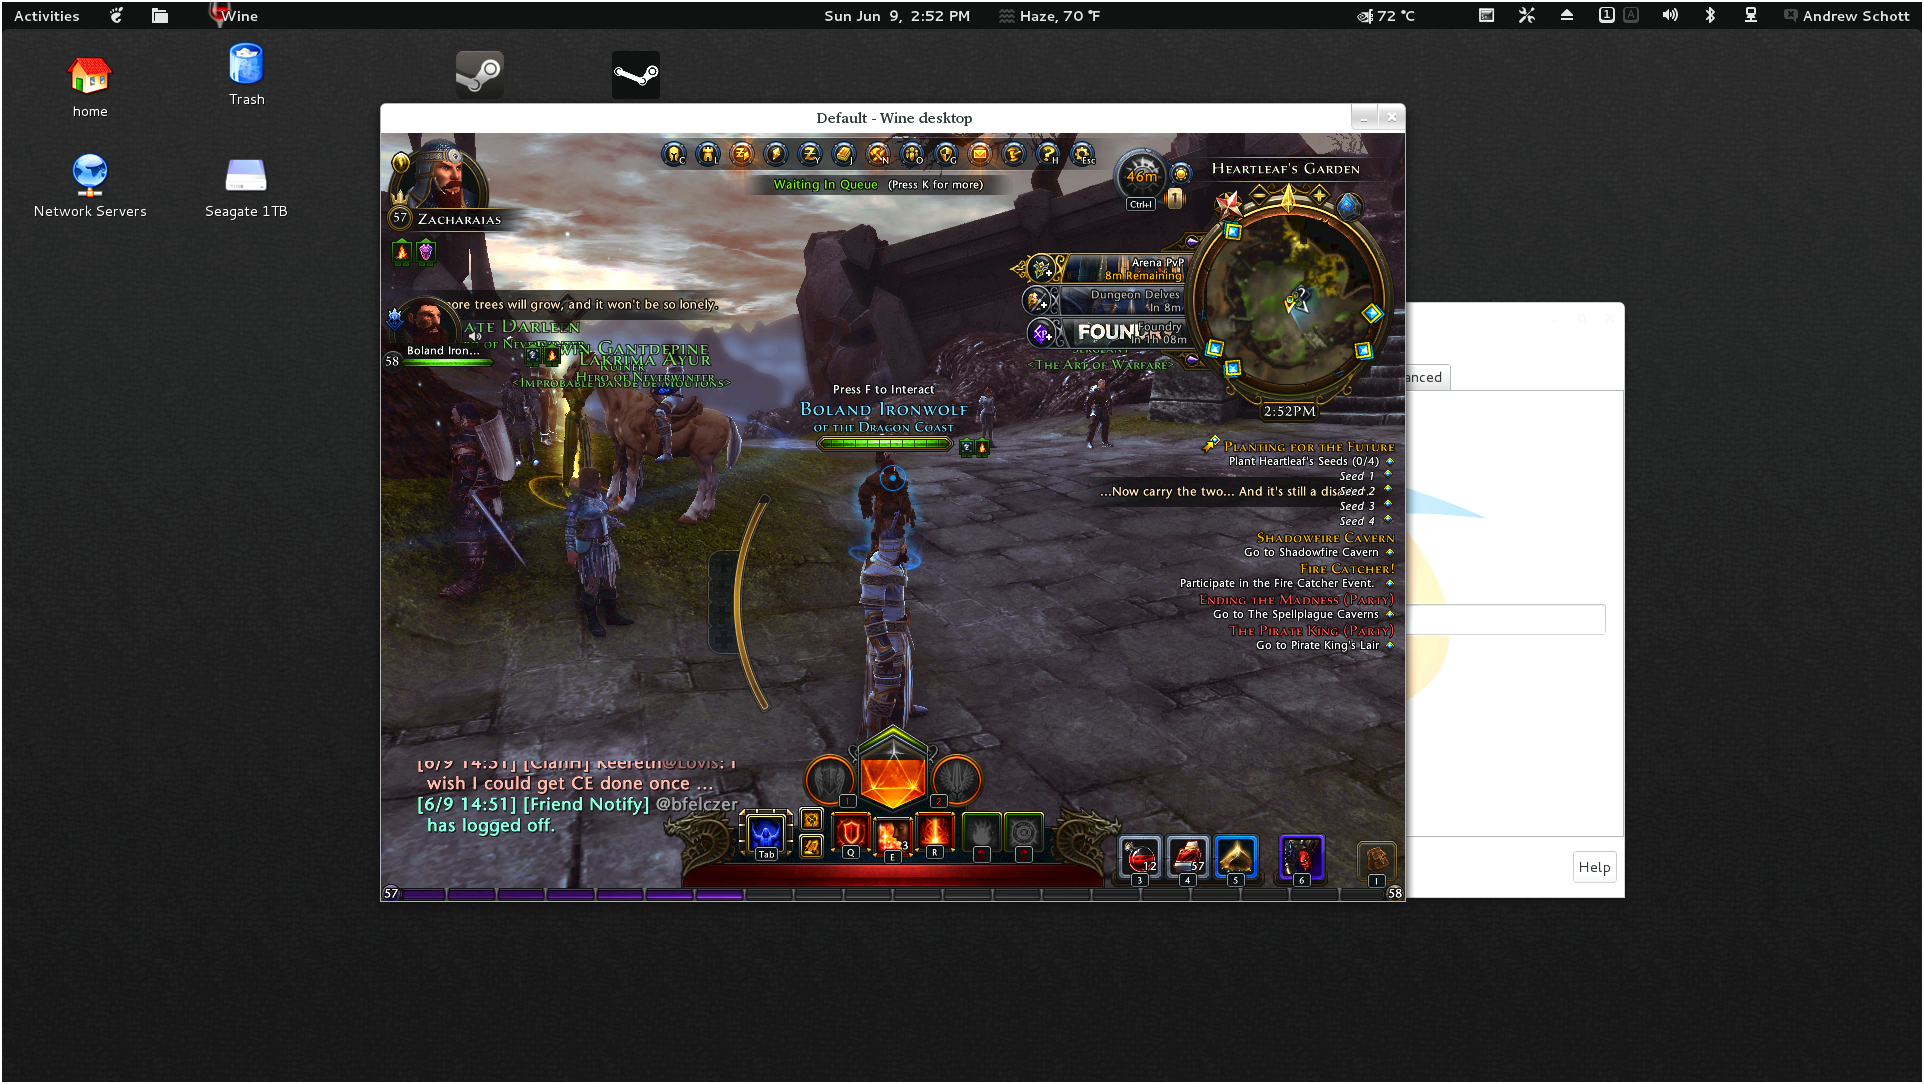 Winehq - dungeons & dragons neverwinter Dragons Neverwinter version on Steam